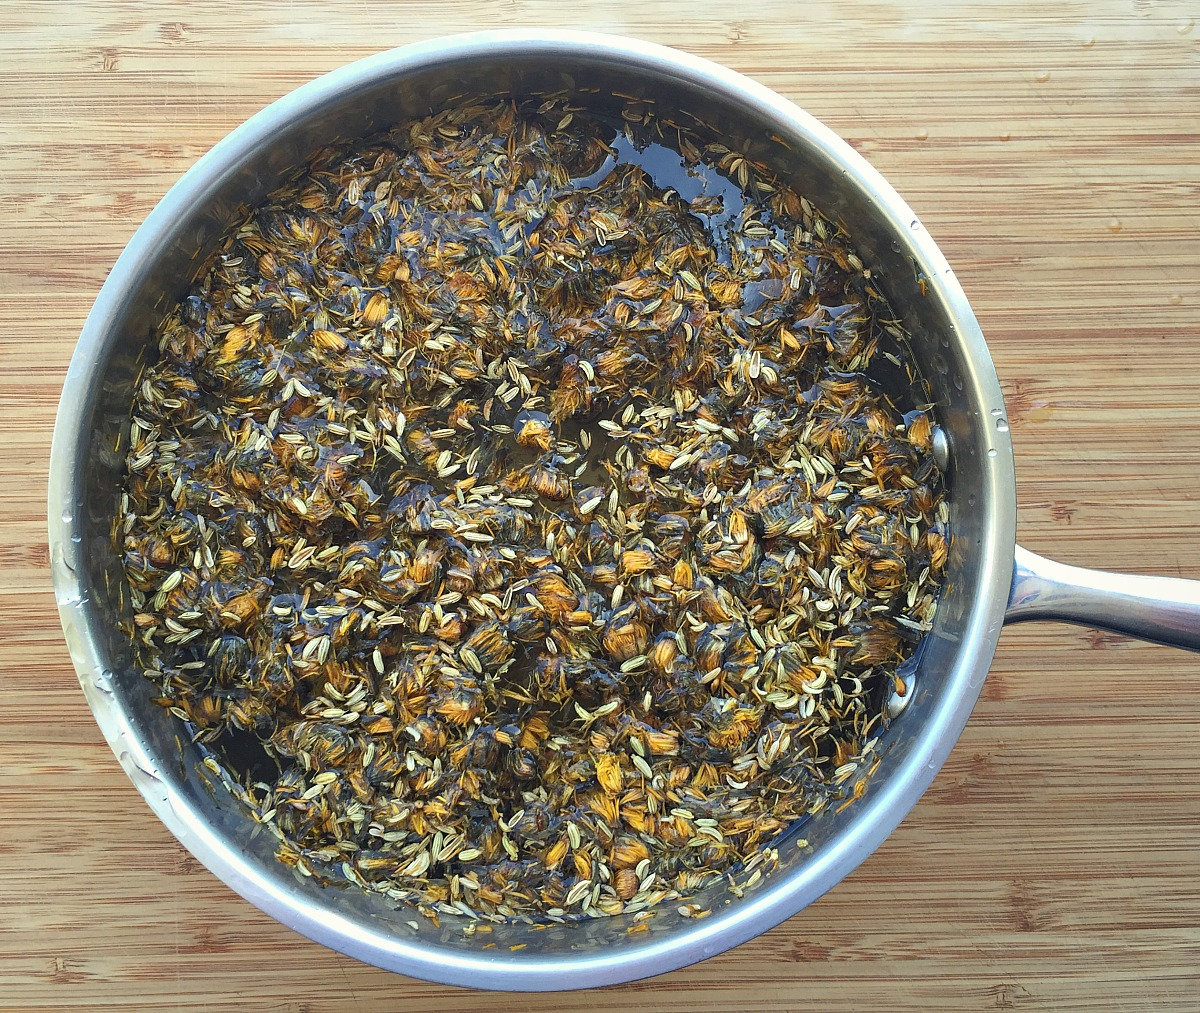 How To Make Dandelion and Fennel Kombucha | Herbal Academy | Kombucha is easy to make at home and you can flavor it to your own liking. Give this dandelion and fennel kombucha a try!